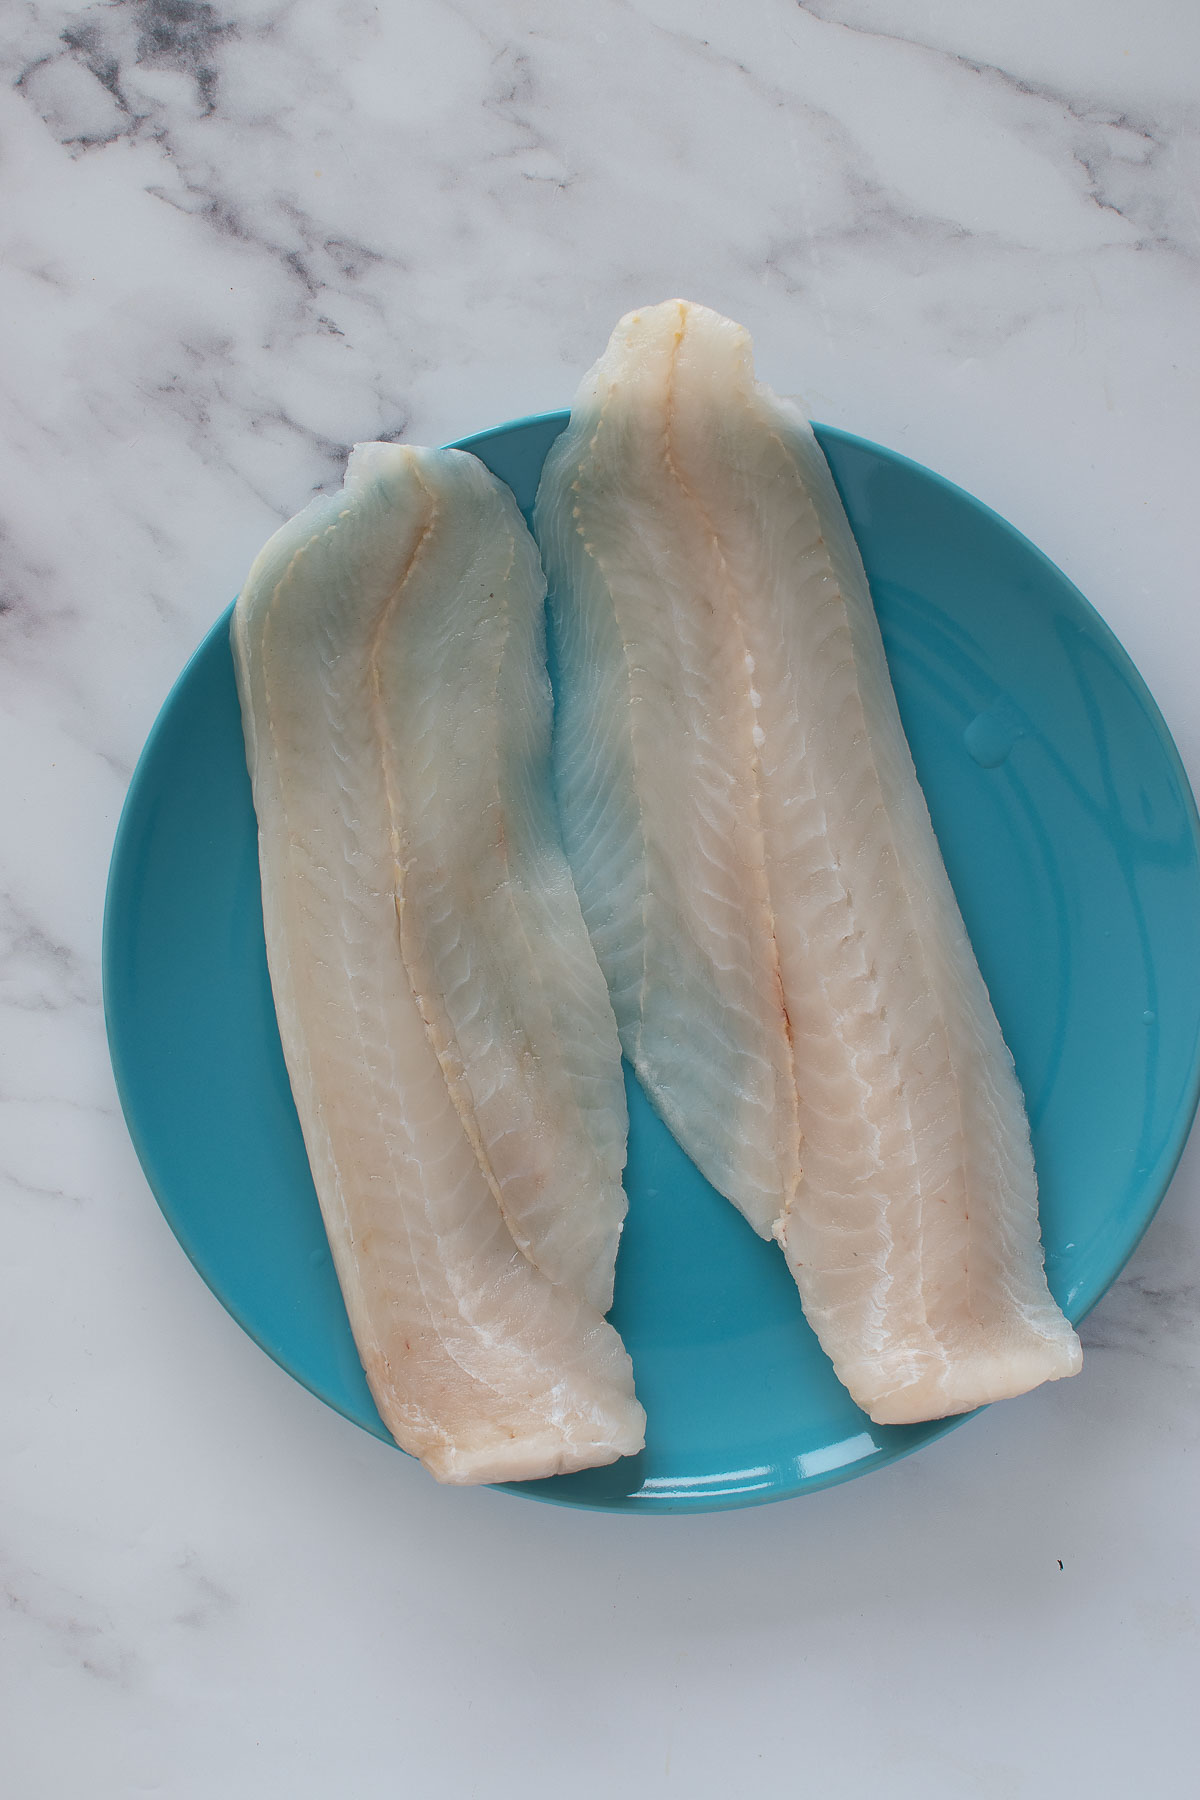 Two hake fish fillets on a plate.